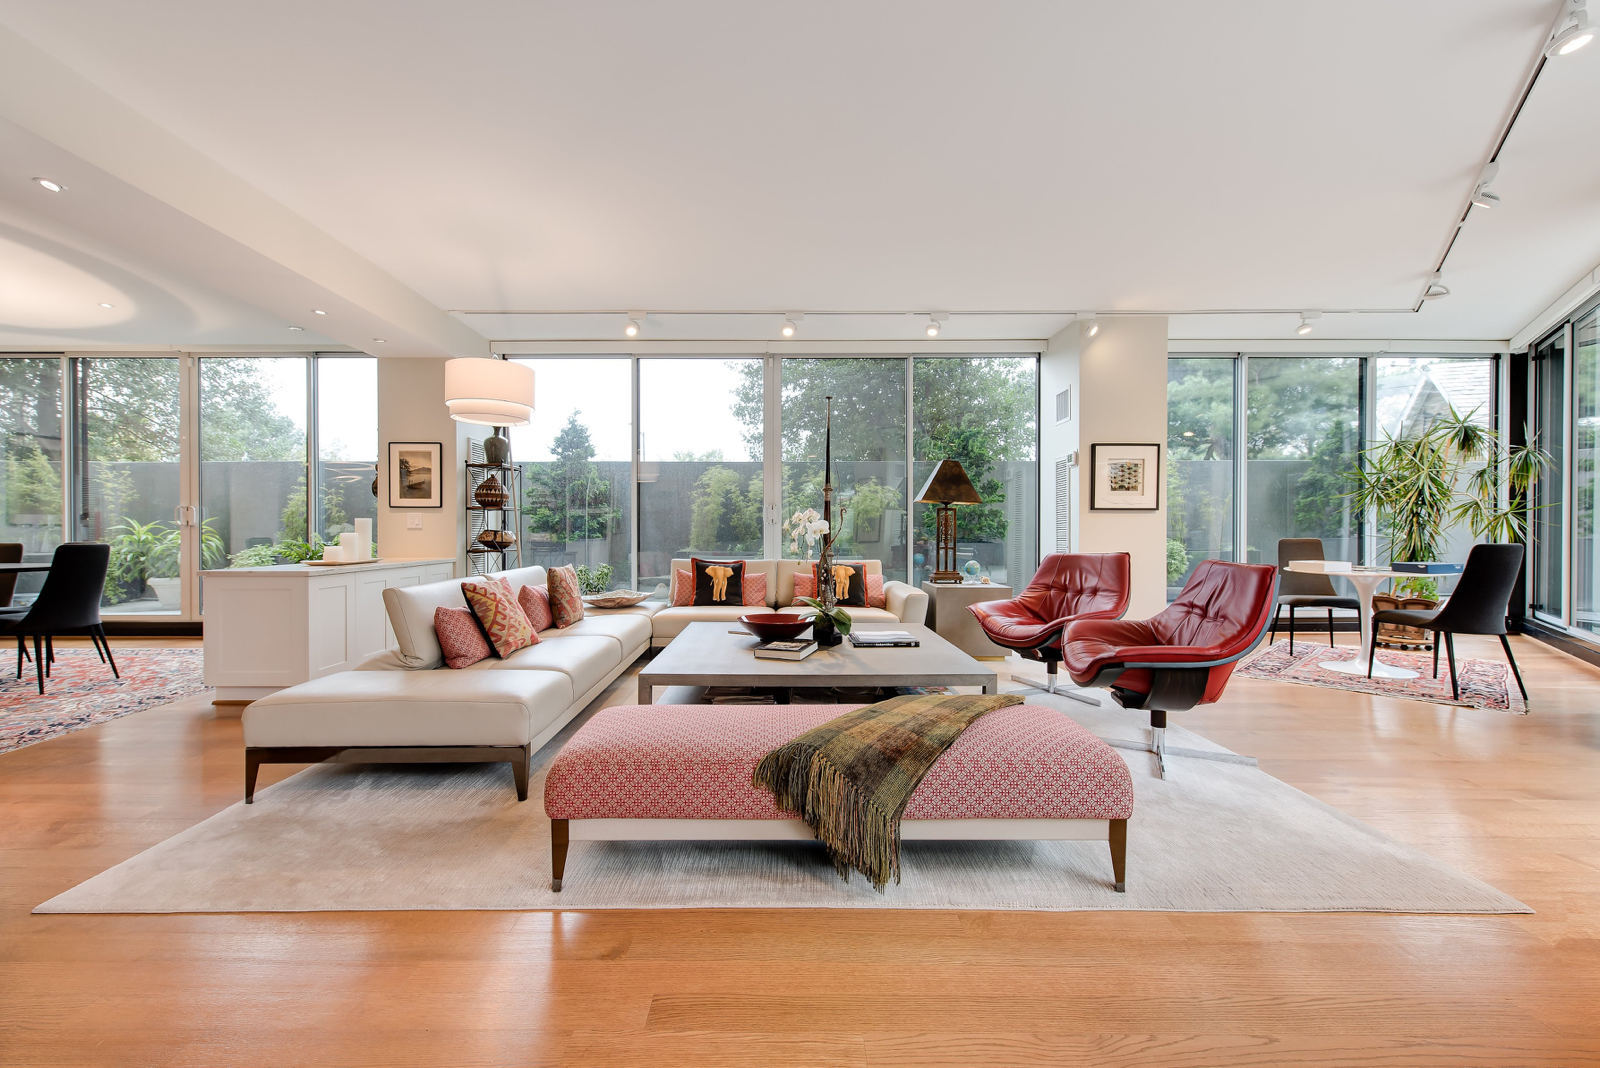 Simple Dos and Don\u0027ts When Designing an Open Floor Plan